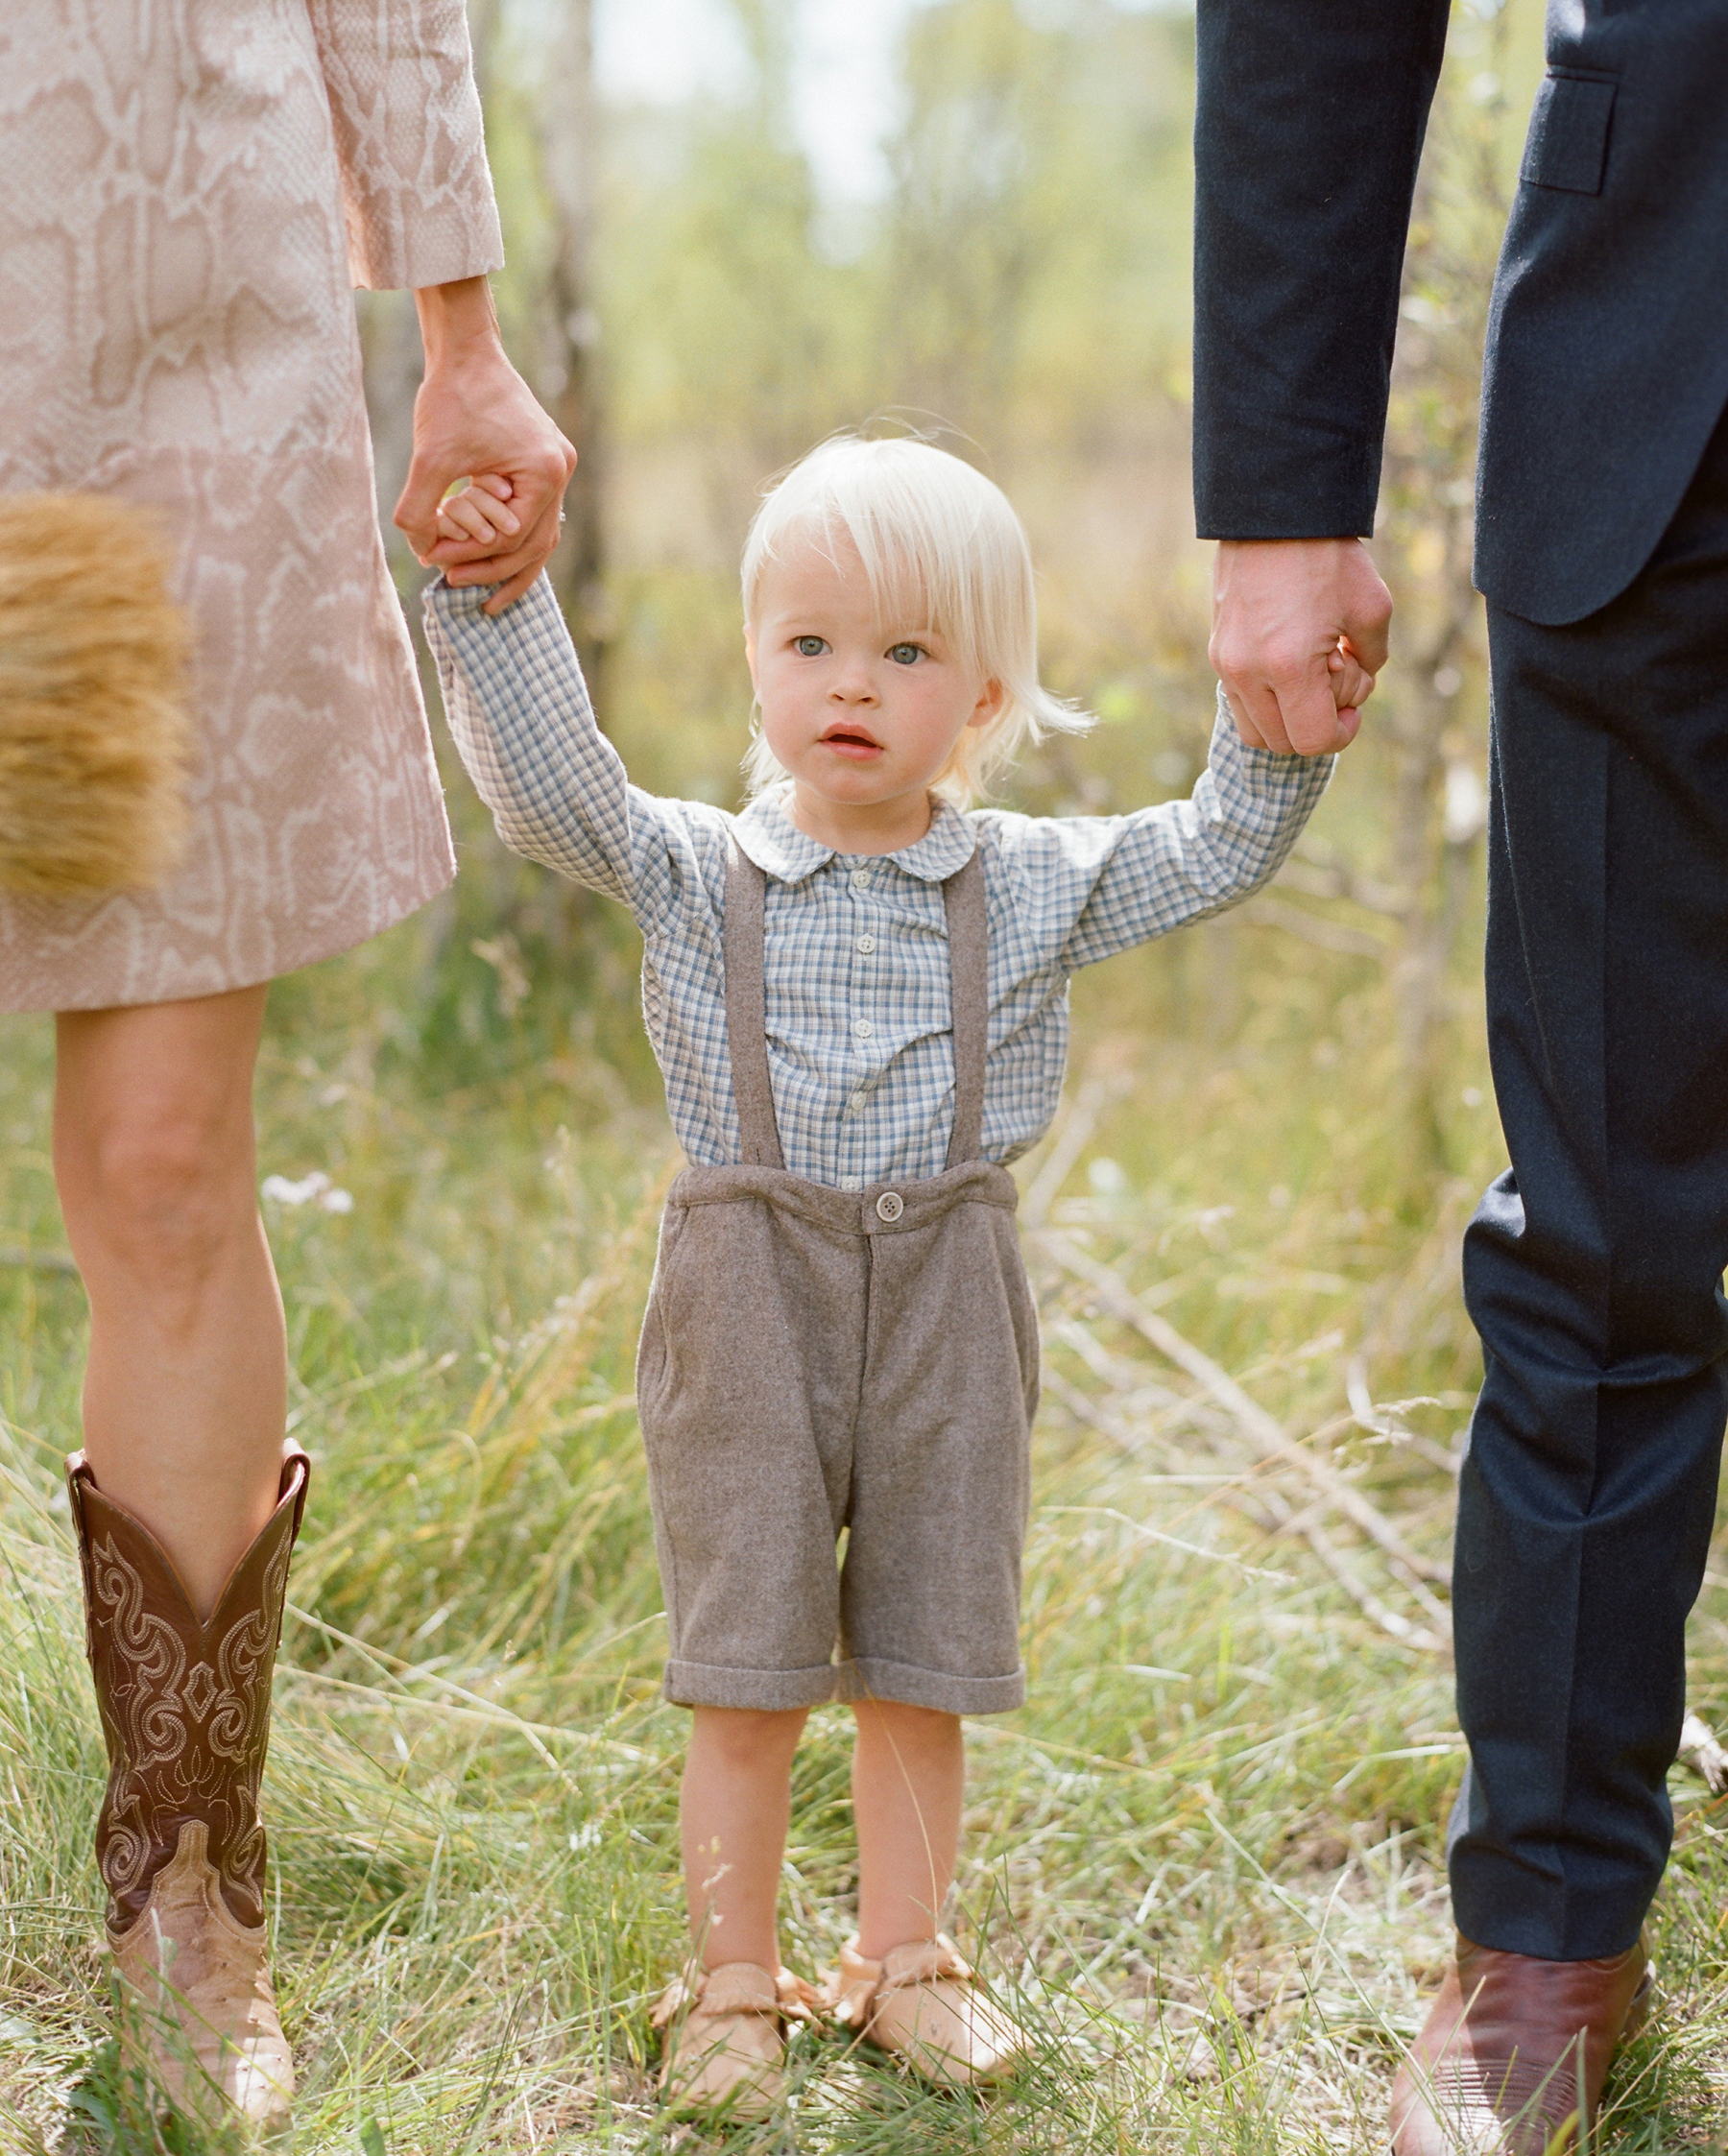 callie-eric-wedding-ringbearer-237-s112113-0815.jpg